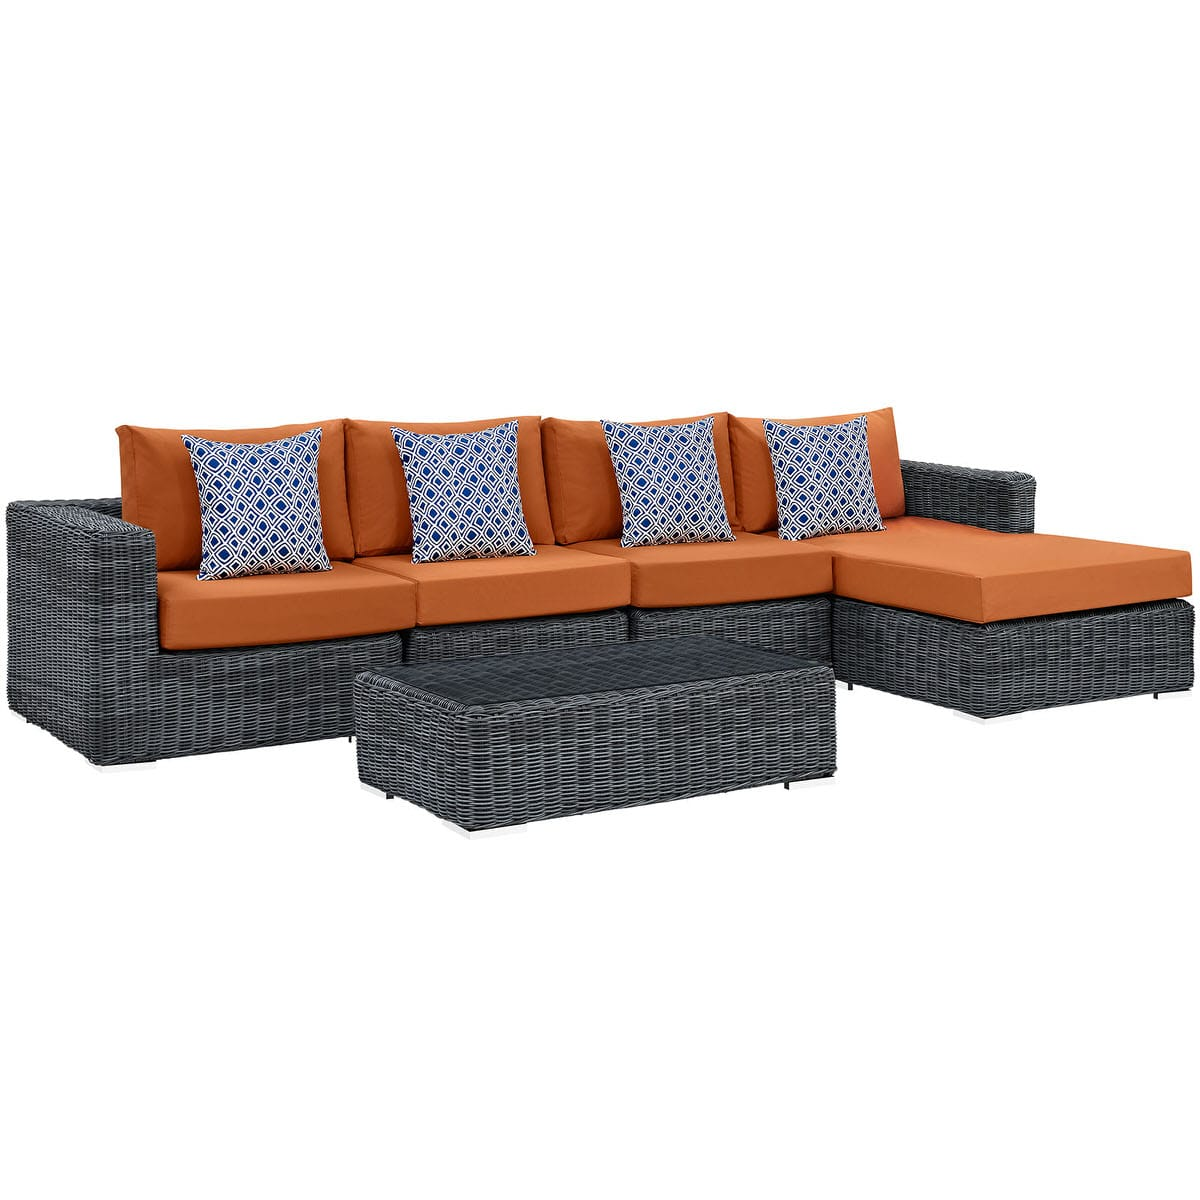 Outdoor Patio Sunbrella Sectional Set